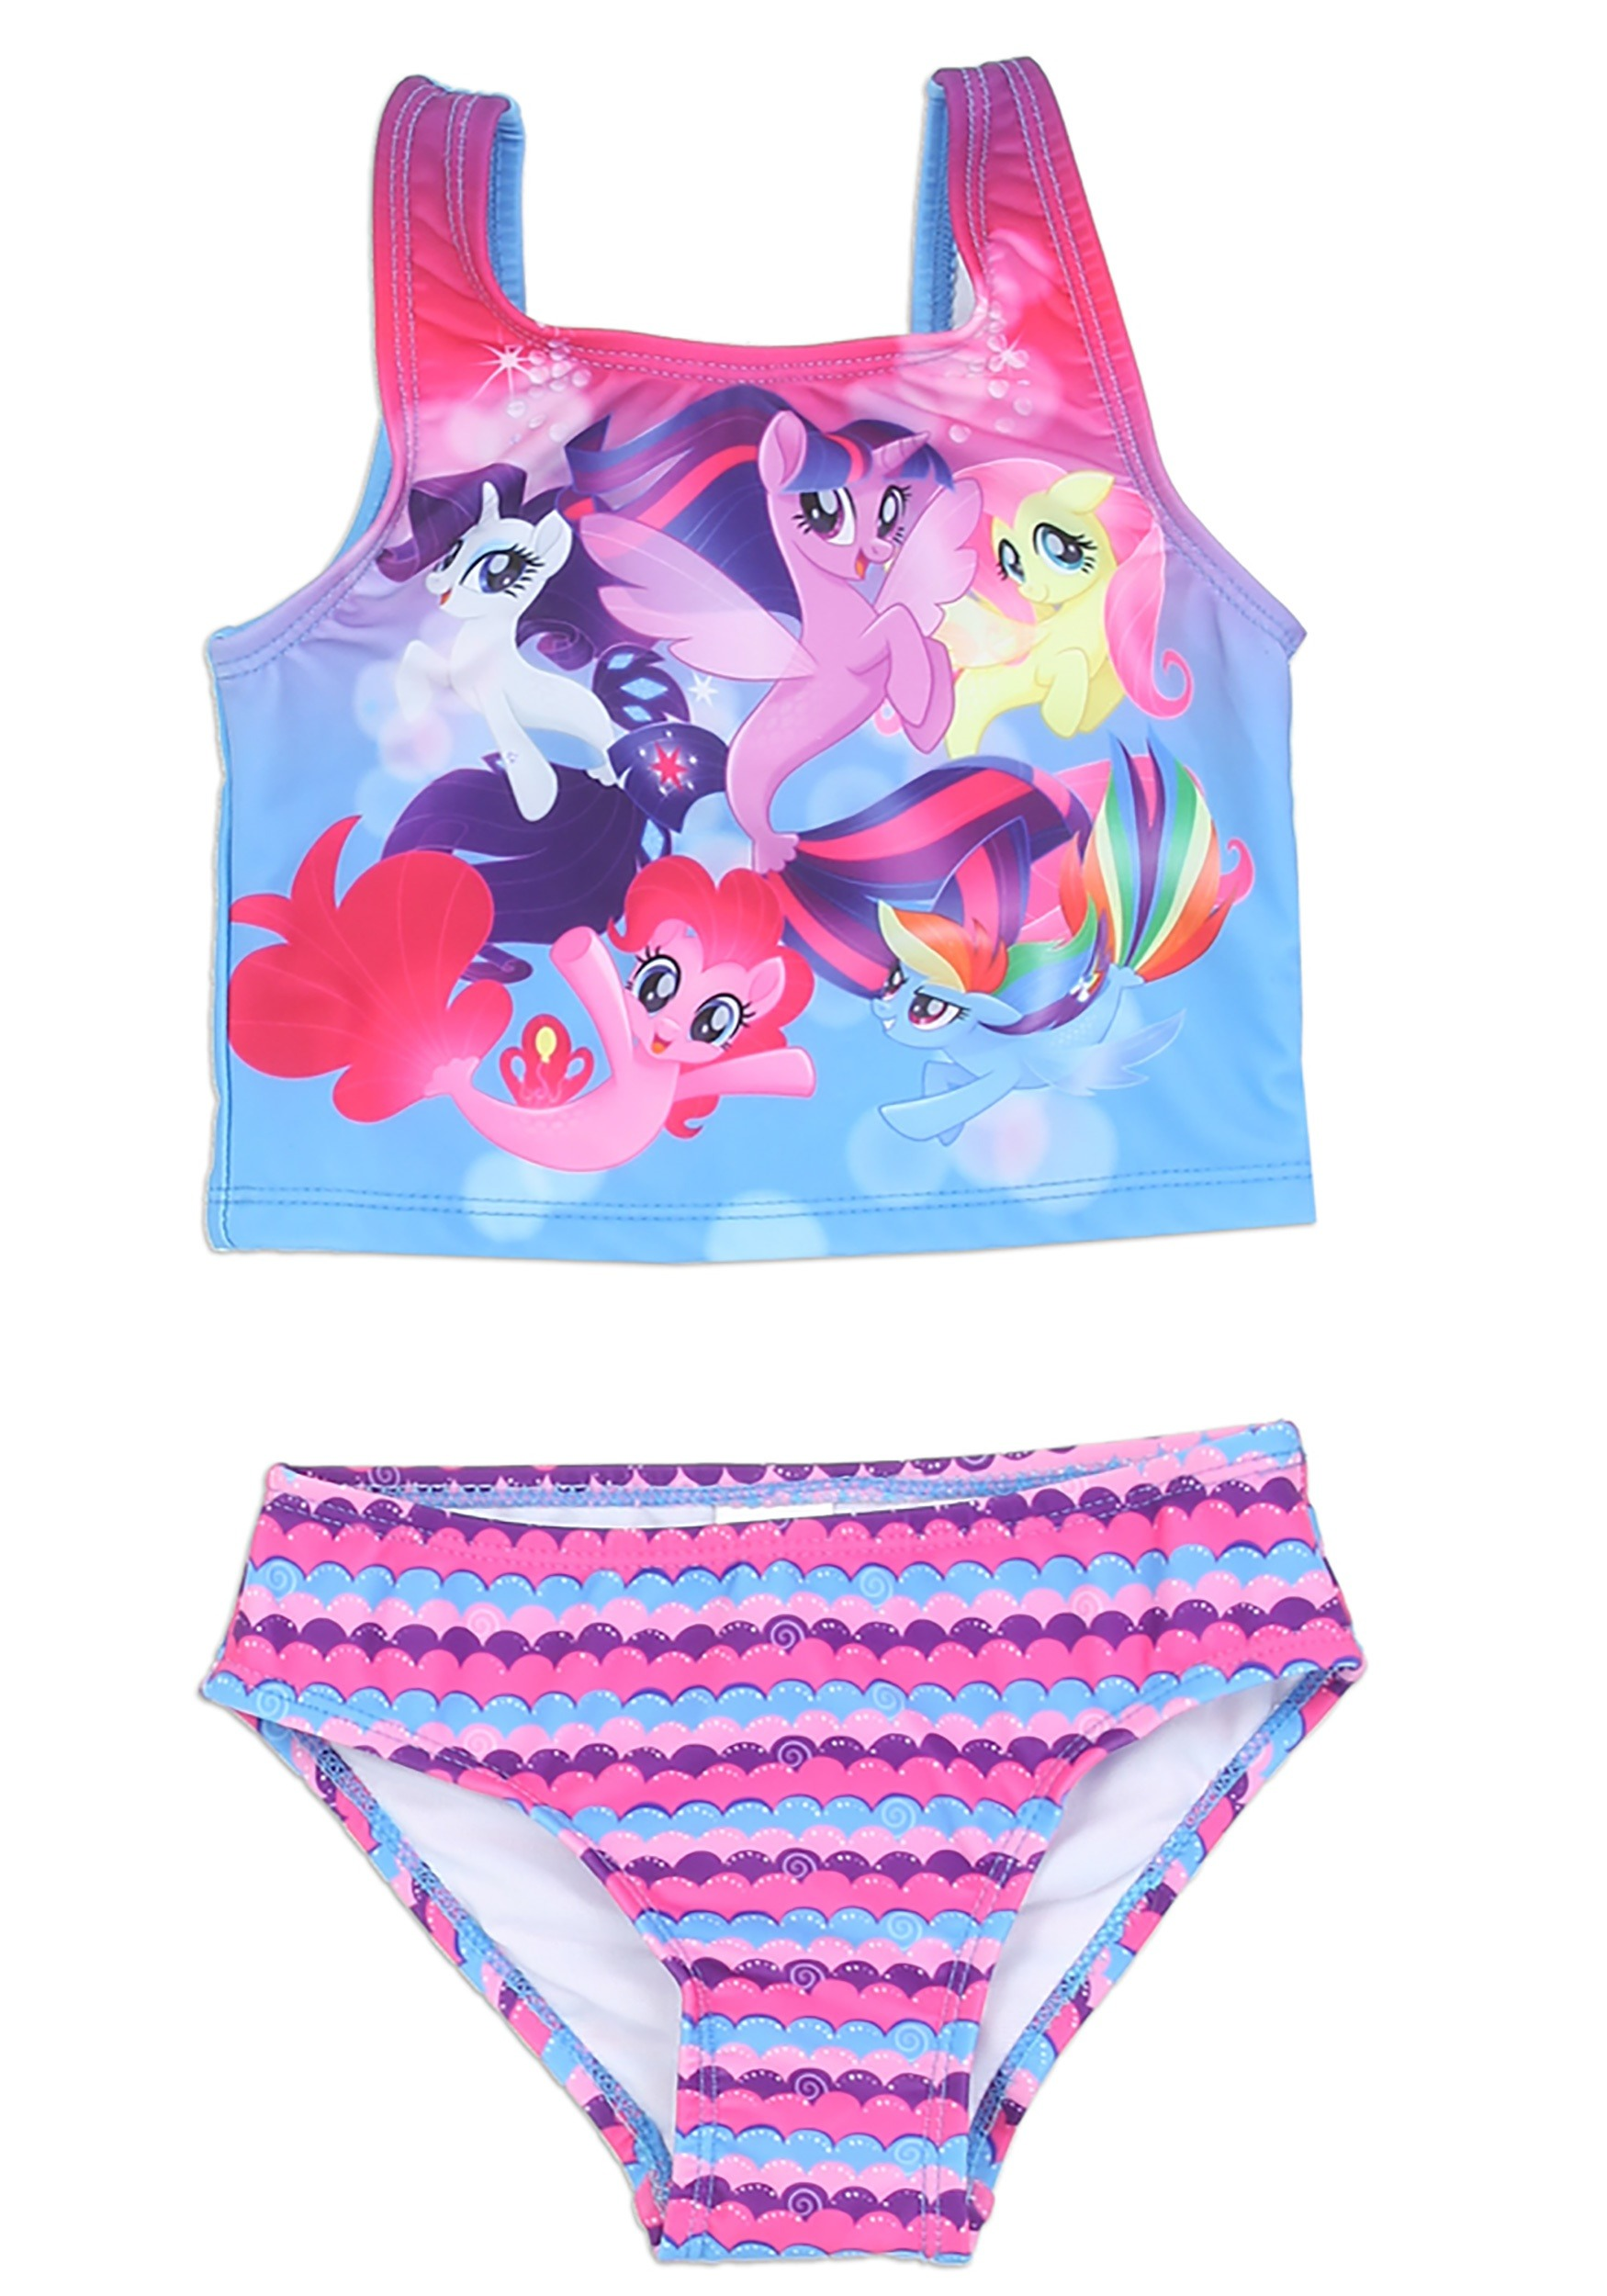 aaa11e67643c0 My Little Pony Girls 2 Piece Toddler Swimsuit1